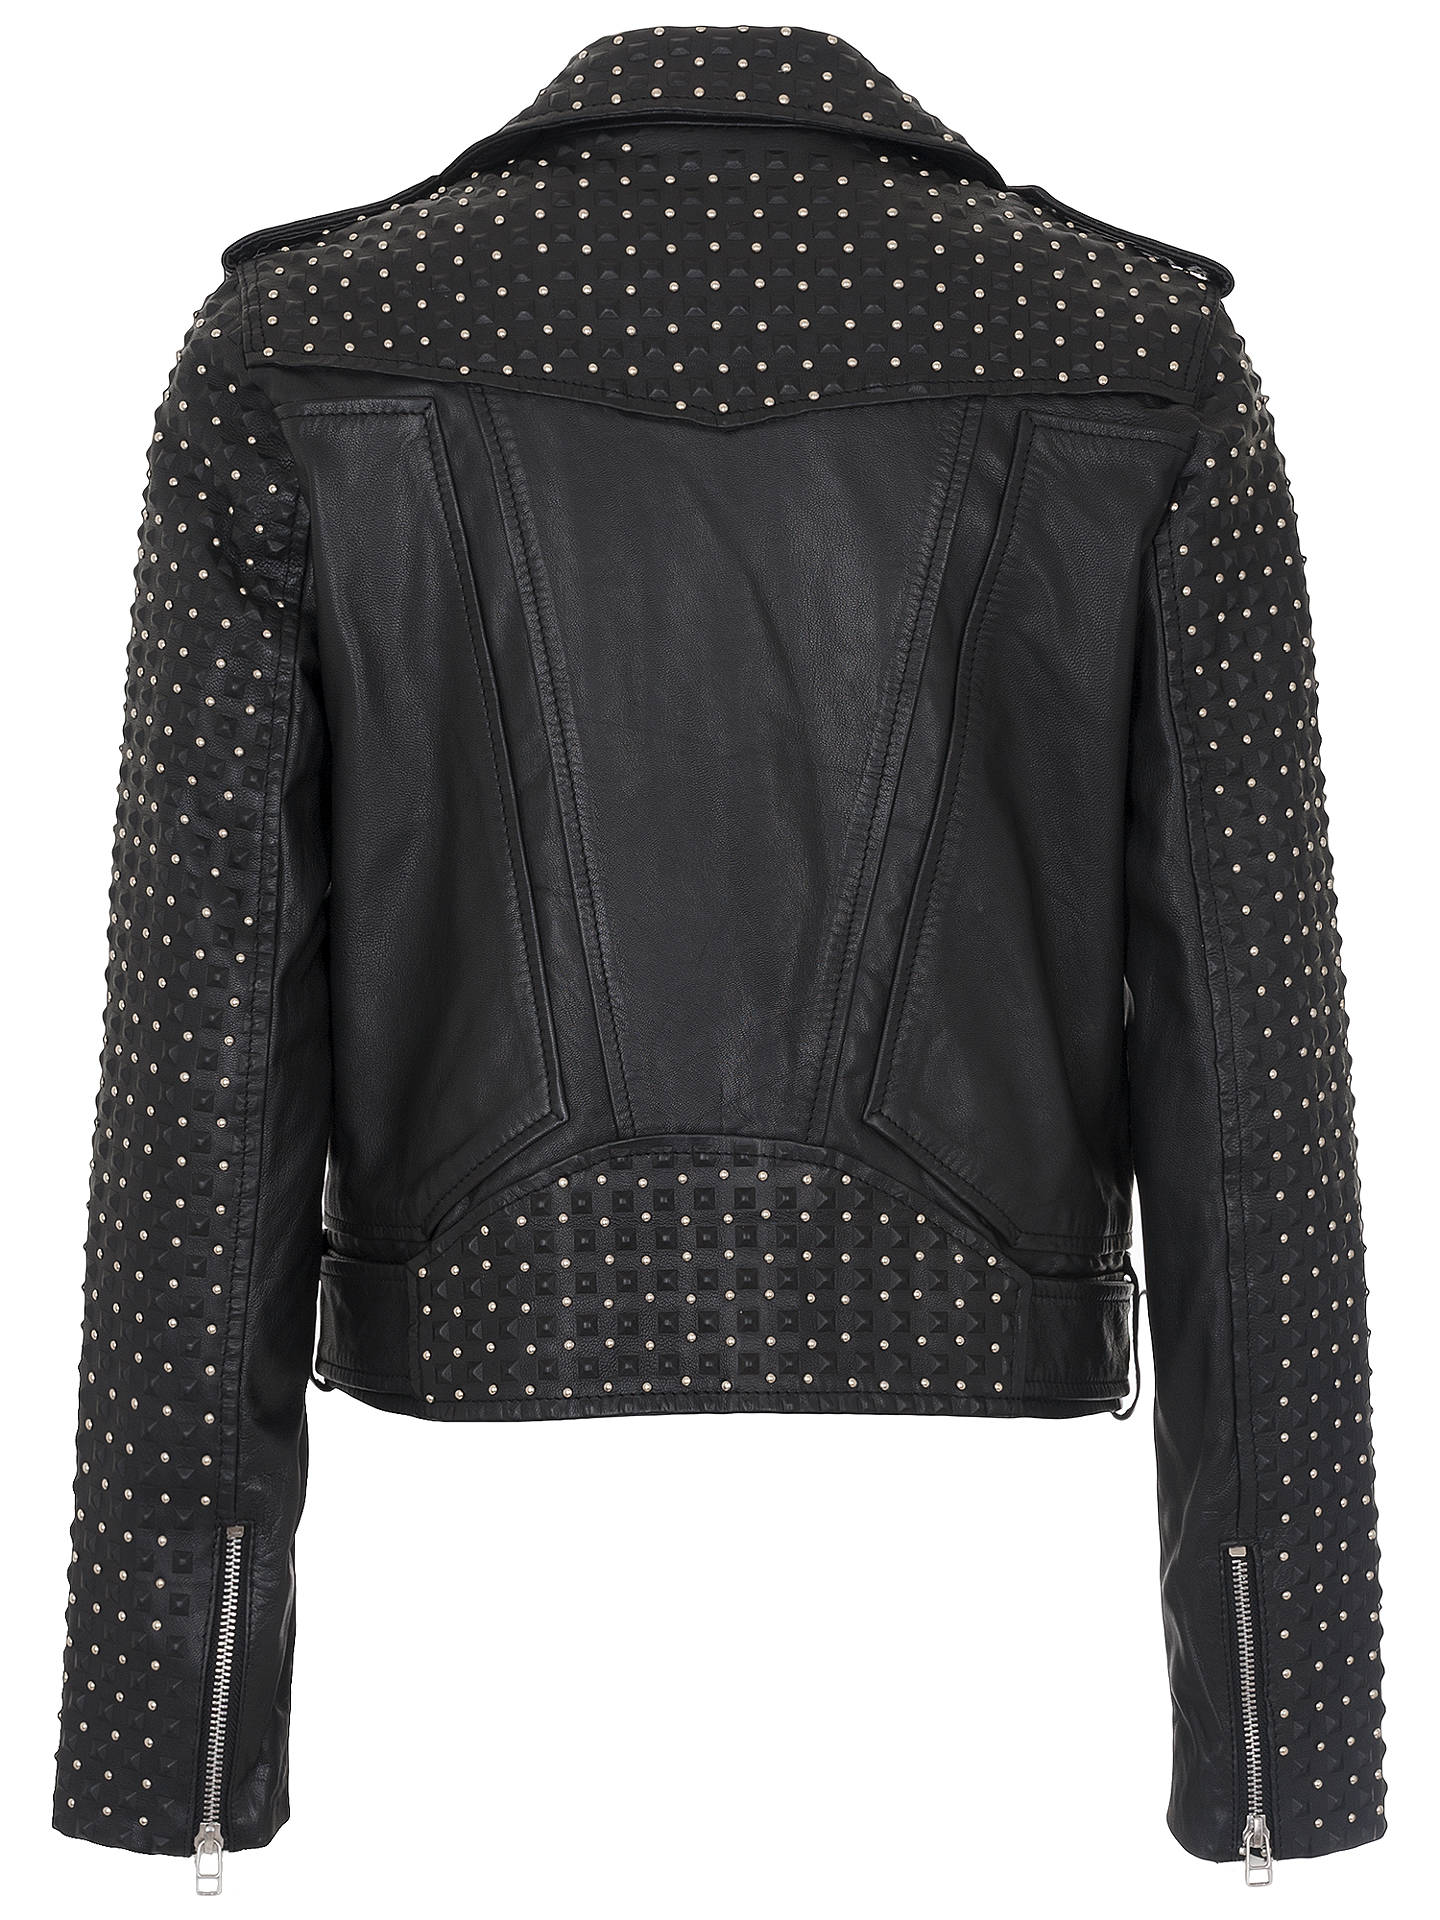 BuyFrench Connection Chaos Leather Biker Jacket, Black, 6 Online at johnlewis.com